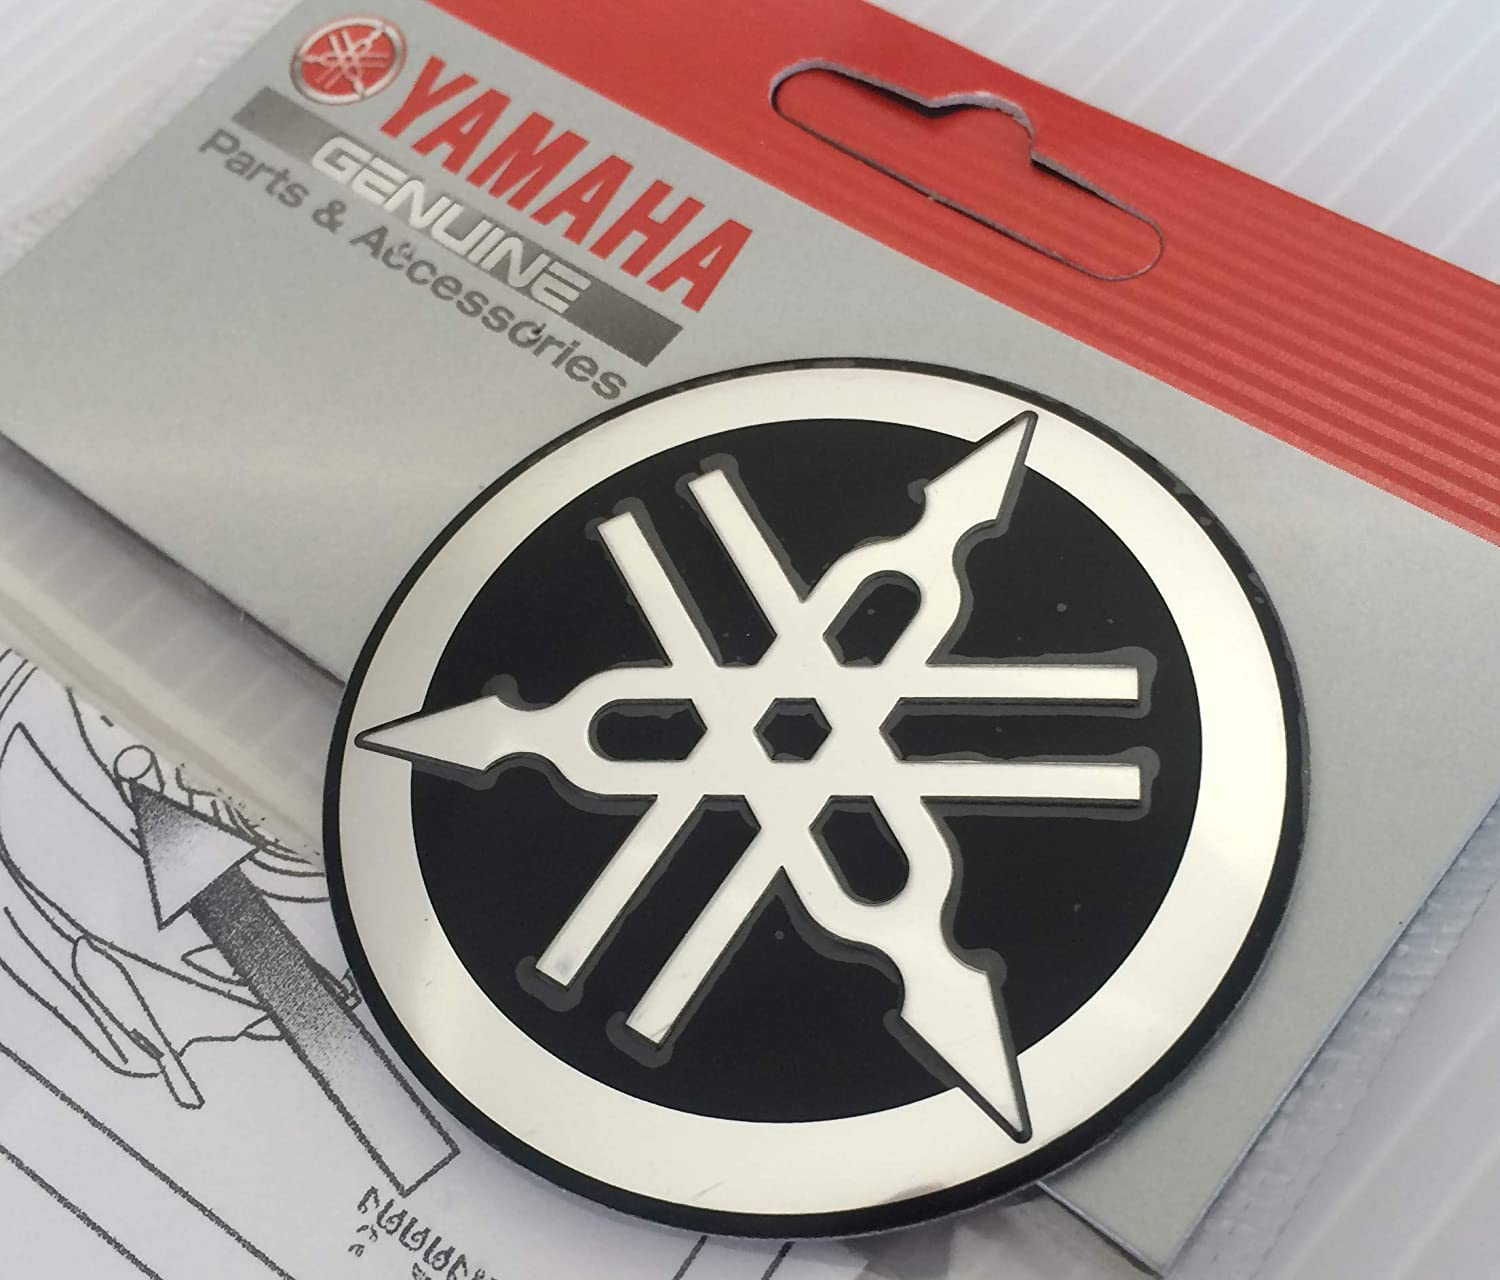 Yamaha 1YC-F313B-Q3-BL - Genuine 55MM Diameter Yamaha Tuning Fork Decal Sticker Emblem Logo Black/Silver Raised Domed Metal Alloy Construction Self Adhesive Motorcycle/Jet Ski/ATV/Snowmobile